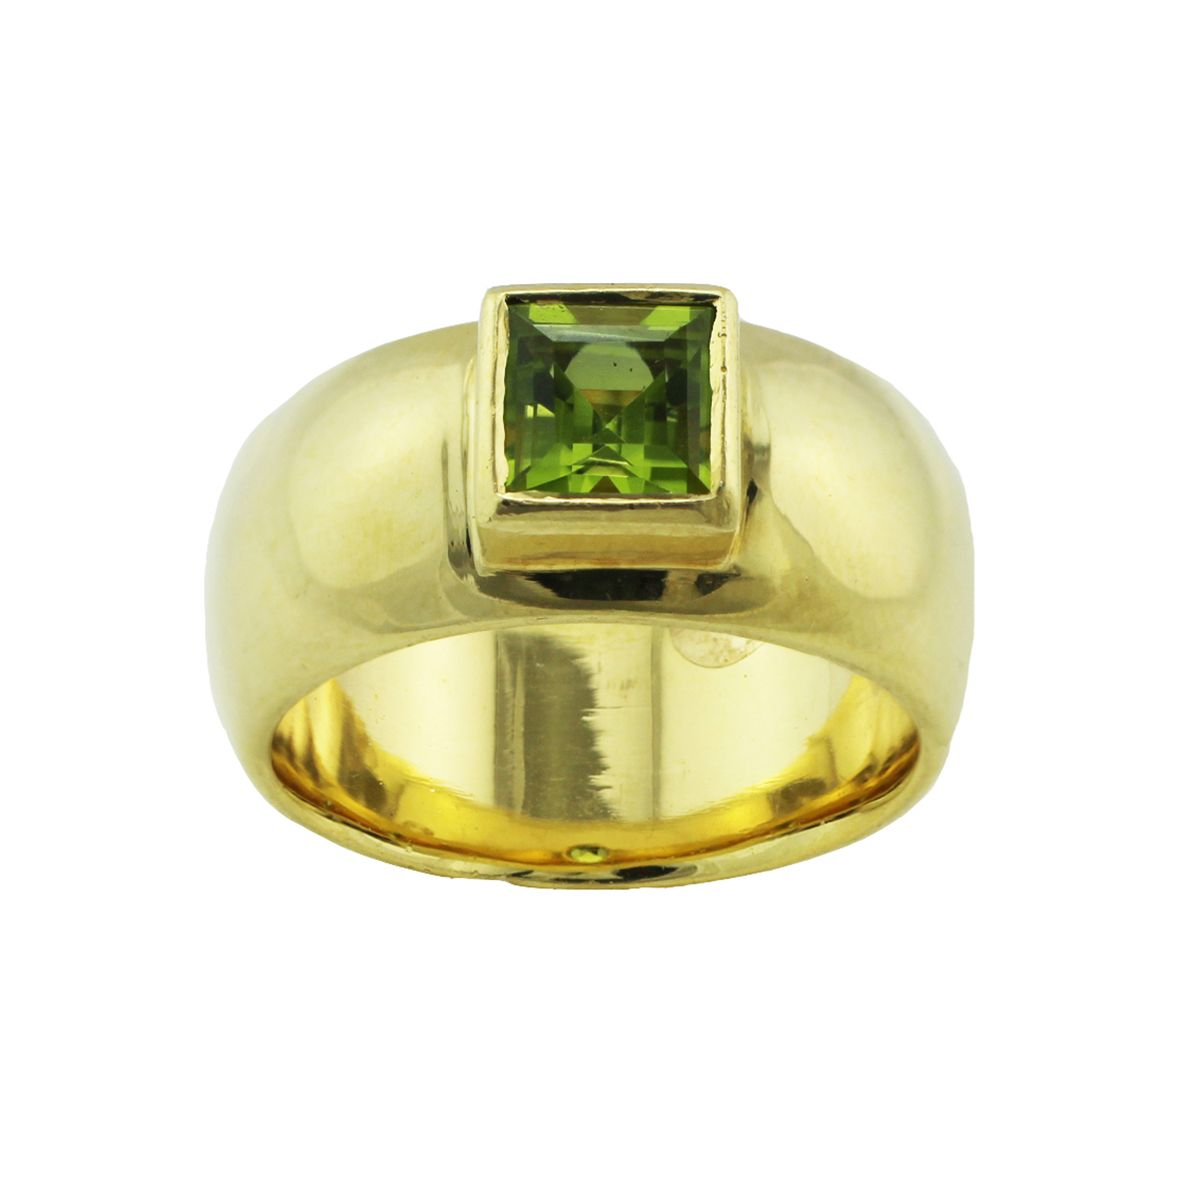 18ct Yellow Gold Peridot Solitaire Single Stone Dress/Cocktail Ring Size Q